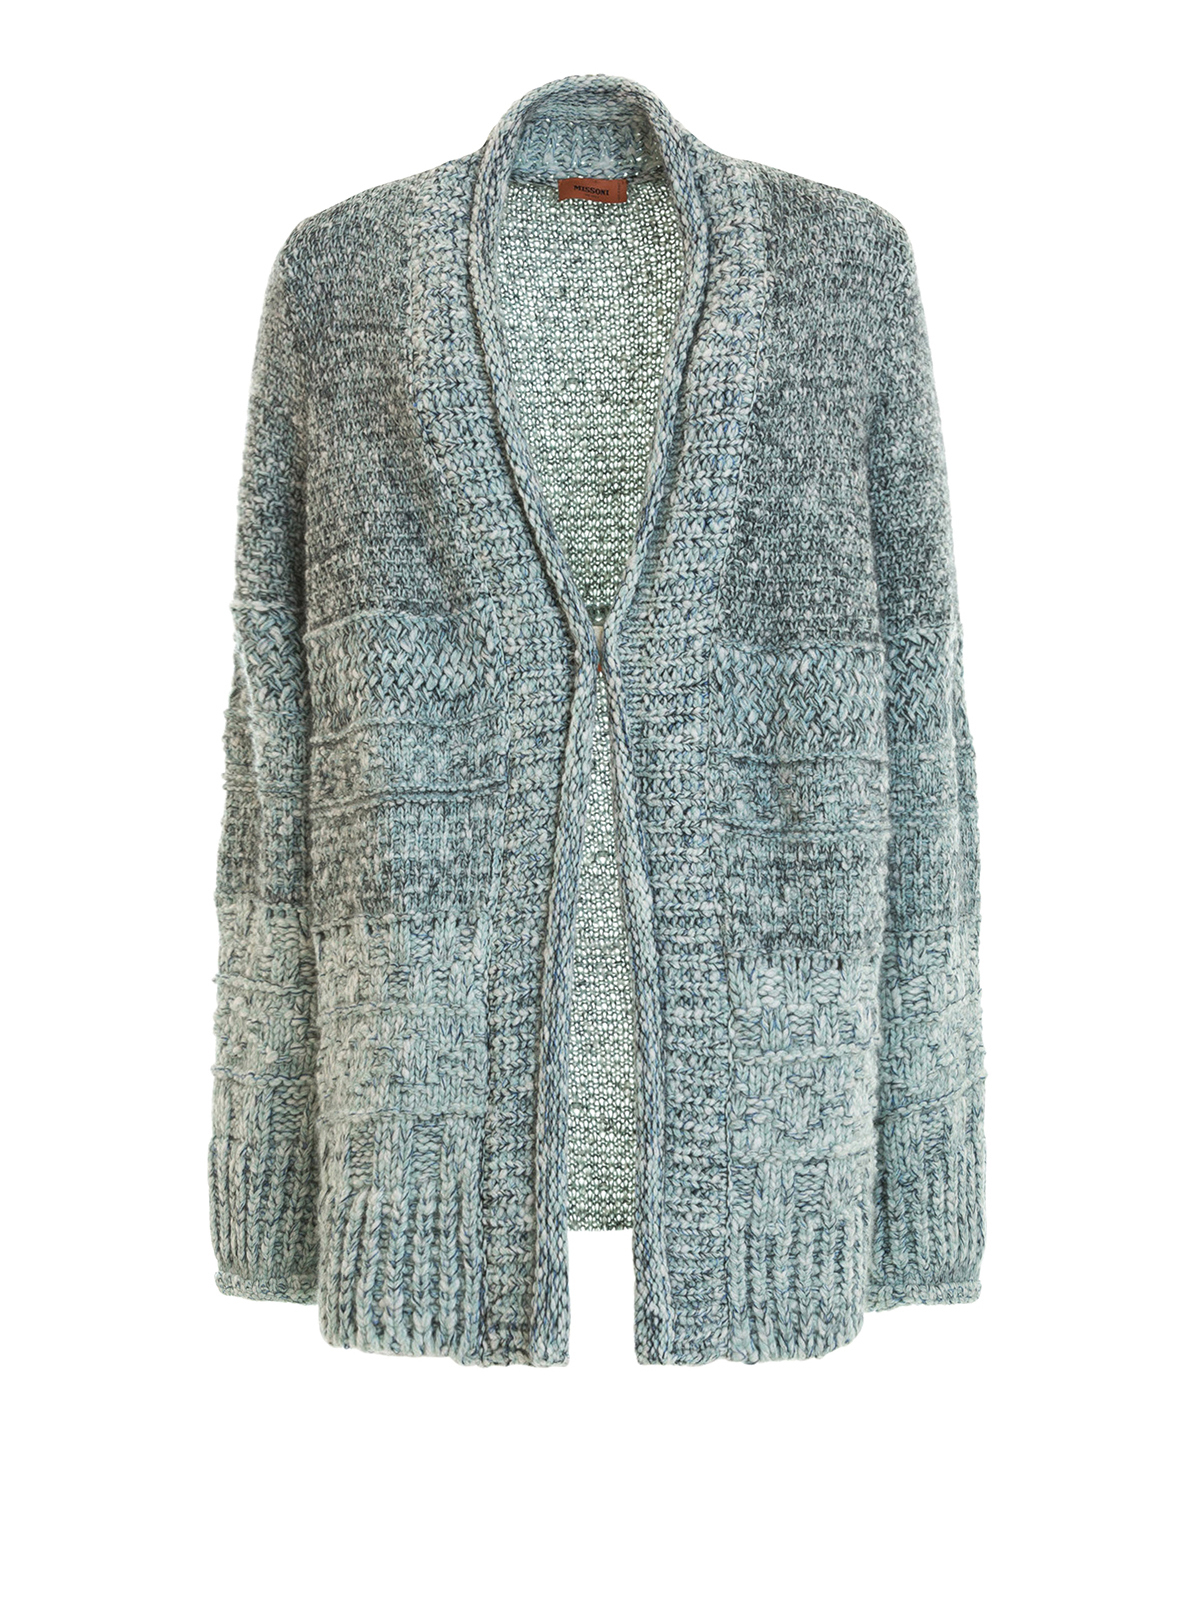 Missoni open front knit cardigan High Quality For Nice Cheap Online How Much Sale Online Factory Sale LVhXx